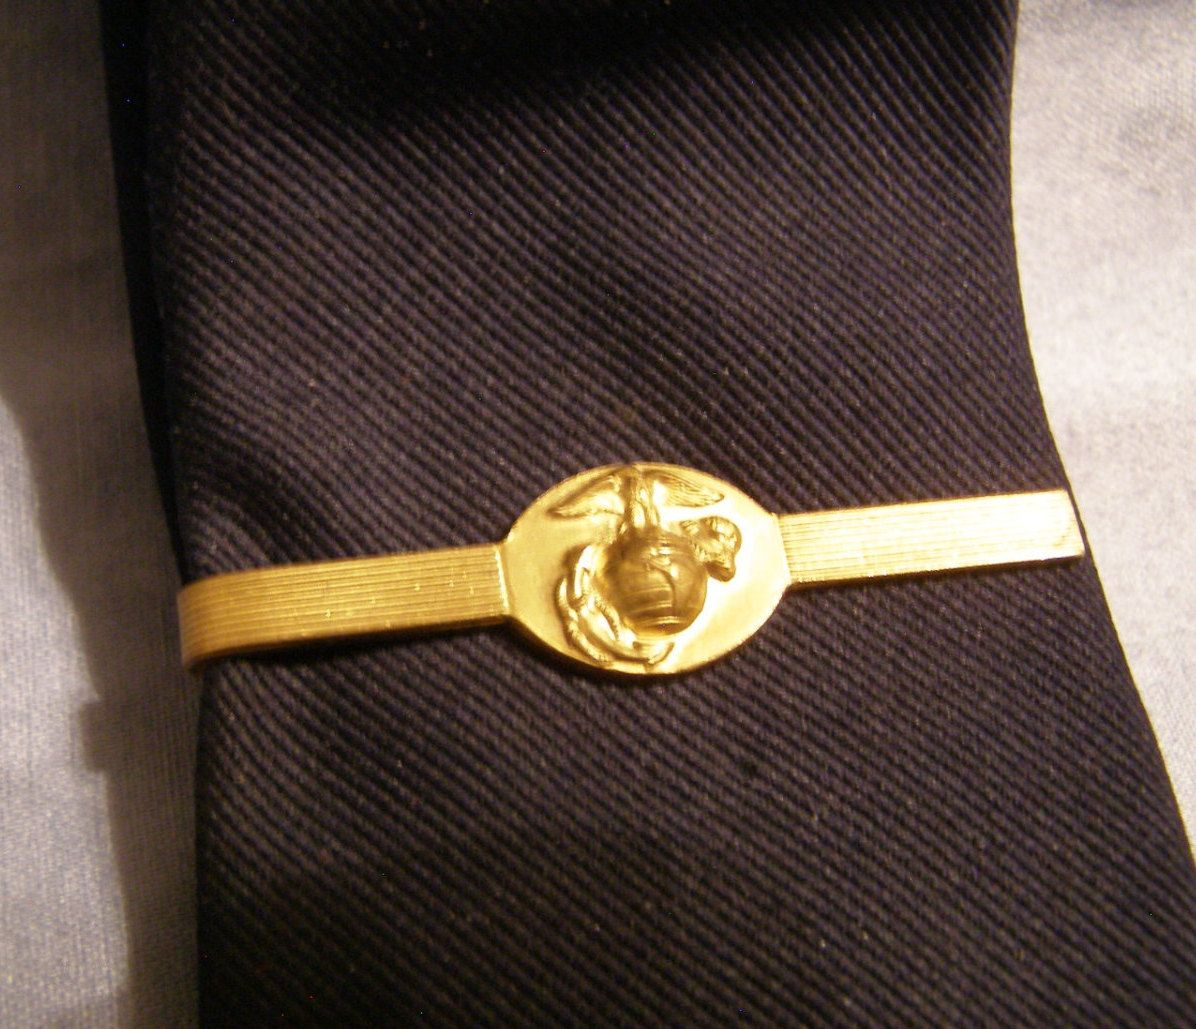 Us marine corps globe anchor insignia tie clip w gold plate finish usmc globe anchor insignia tie clip us marine corps official gi jewelry gold plate finish vintage military tie clasp valentines gift by ccuart Images